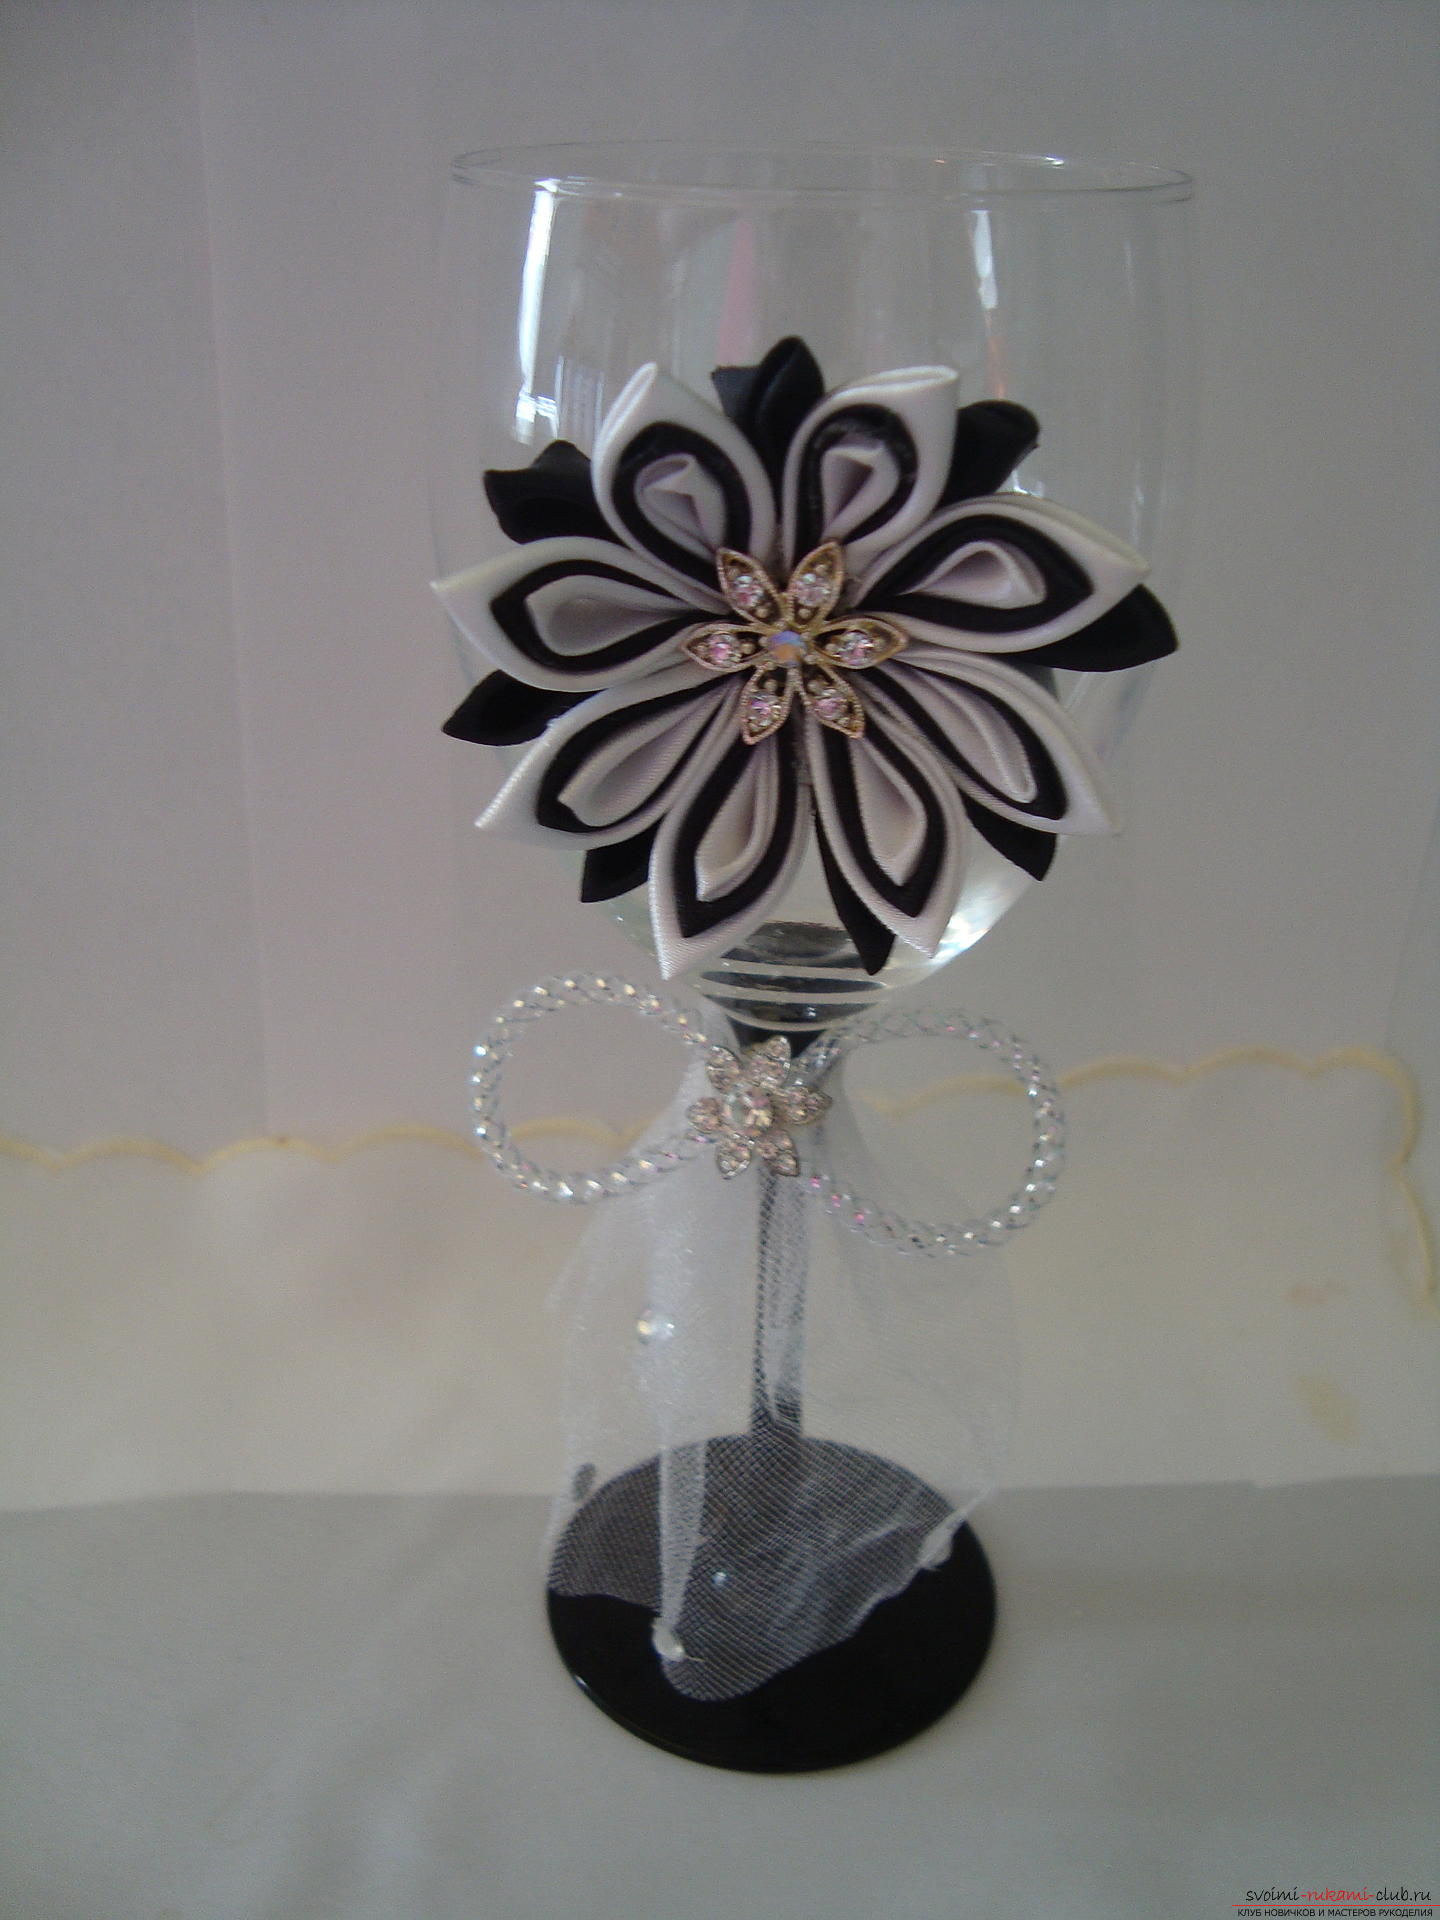 Step-by-step instruction on decorating a wedding glass with a description and a photo. Photo №27